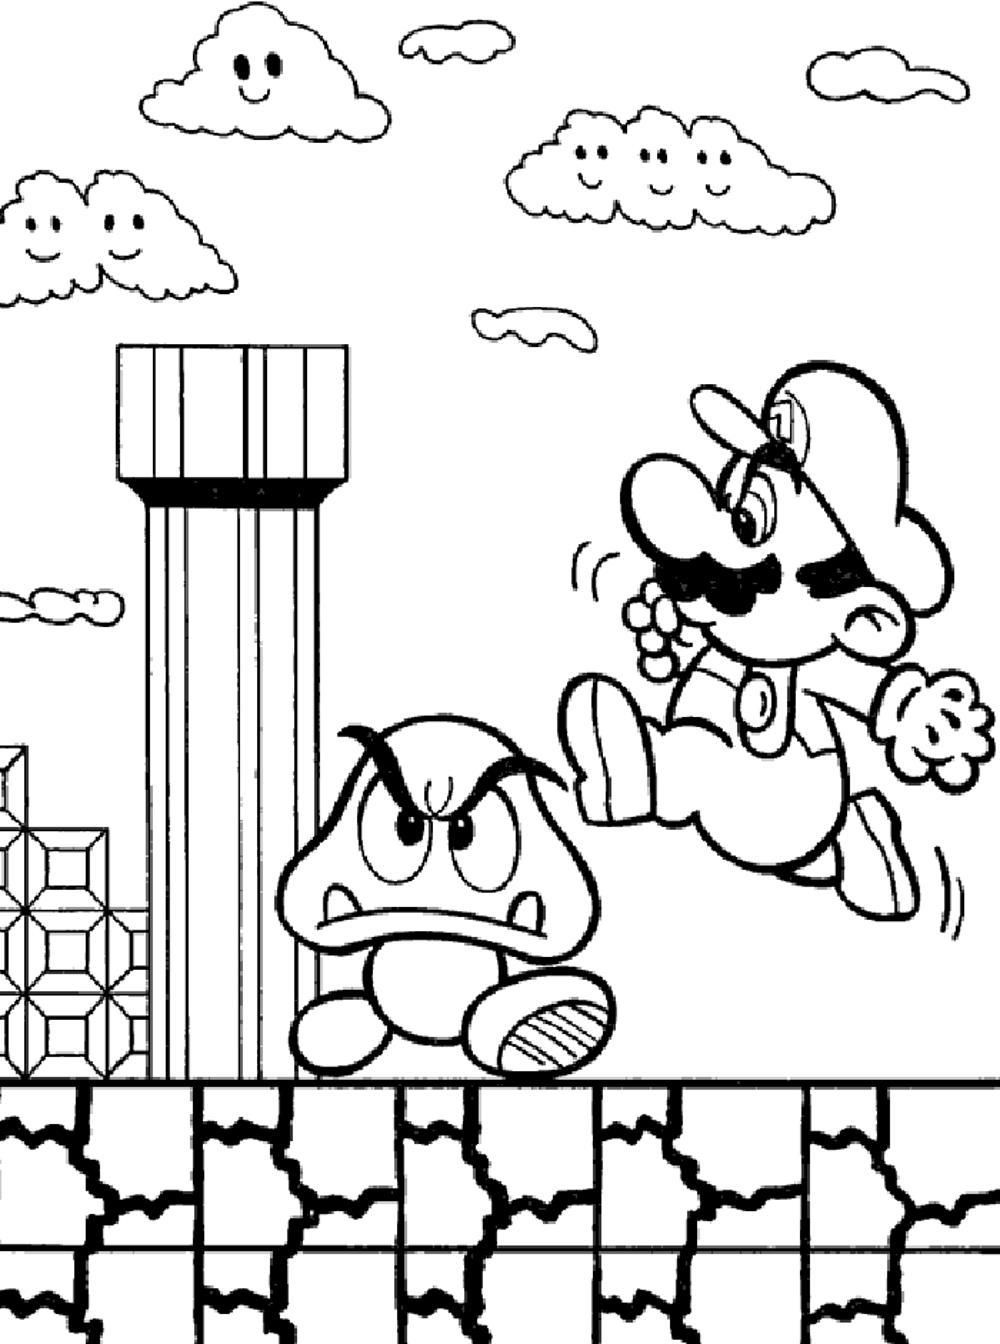 worksheet Mario Worksheets workbooks mario worksheets free printable for pre bros coloring pages pinterest